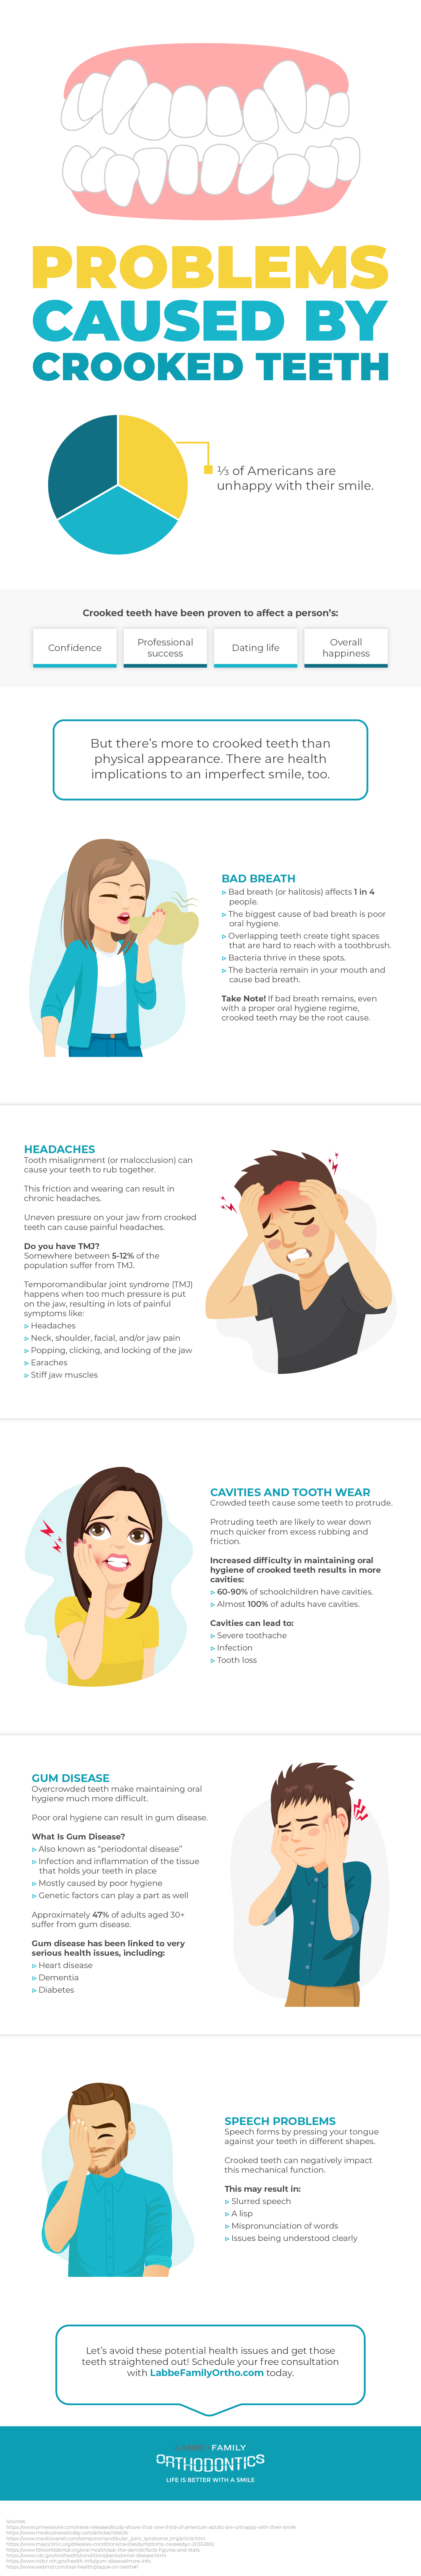 Problems Caused by Crooked Teeth Infographic